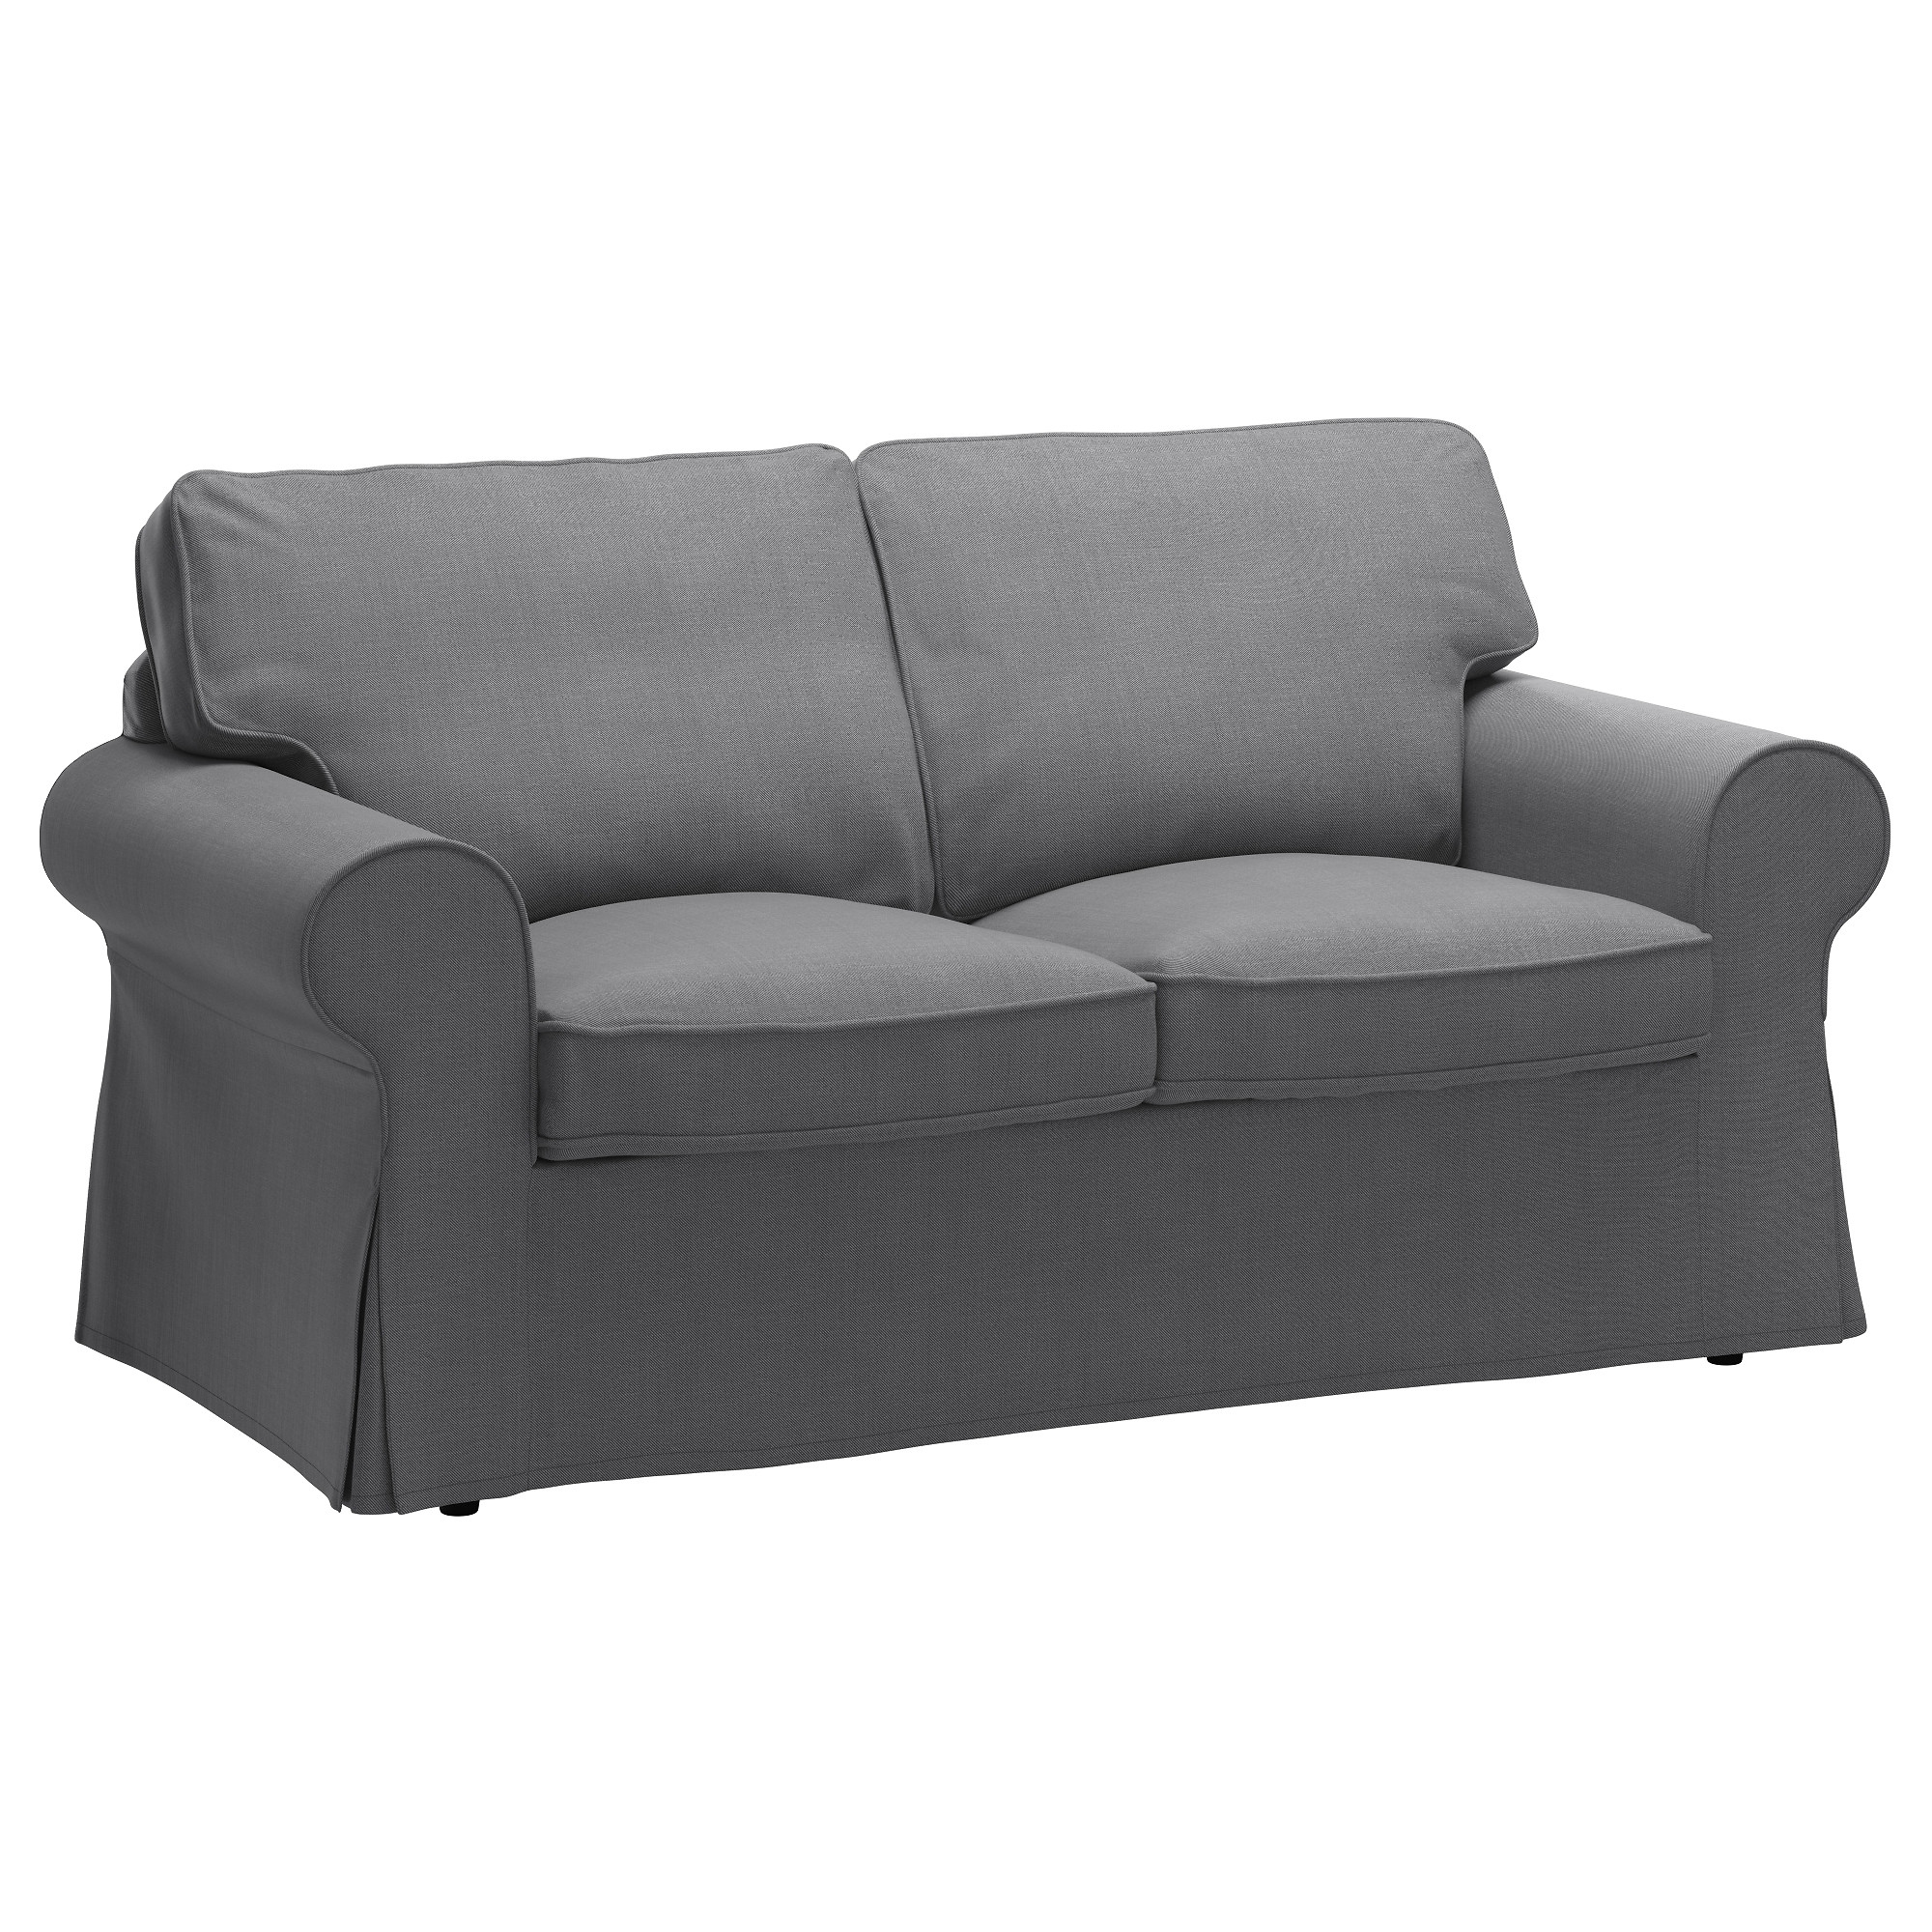 Home Reserve Sectional Review Sofas With Removable Washable Covers Intended For Favorite